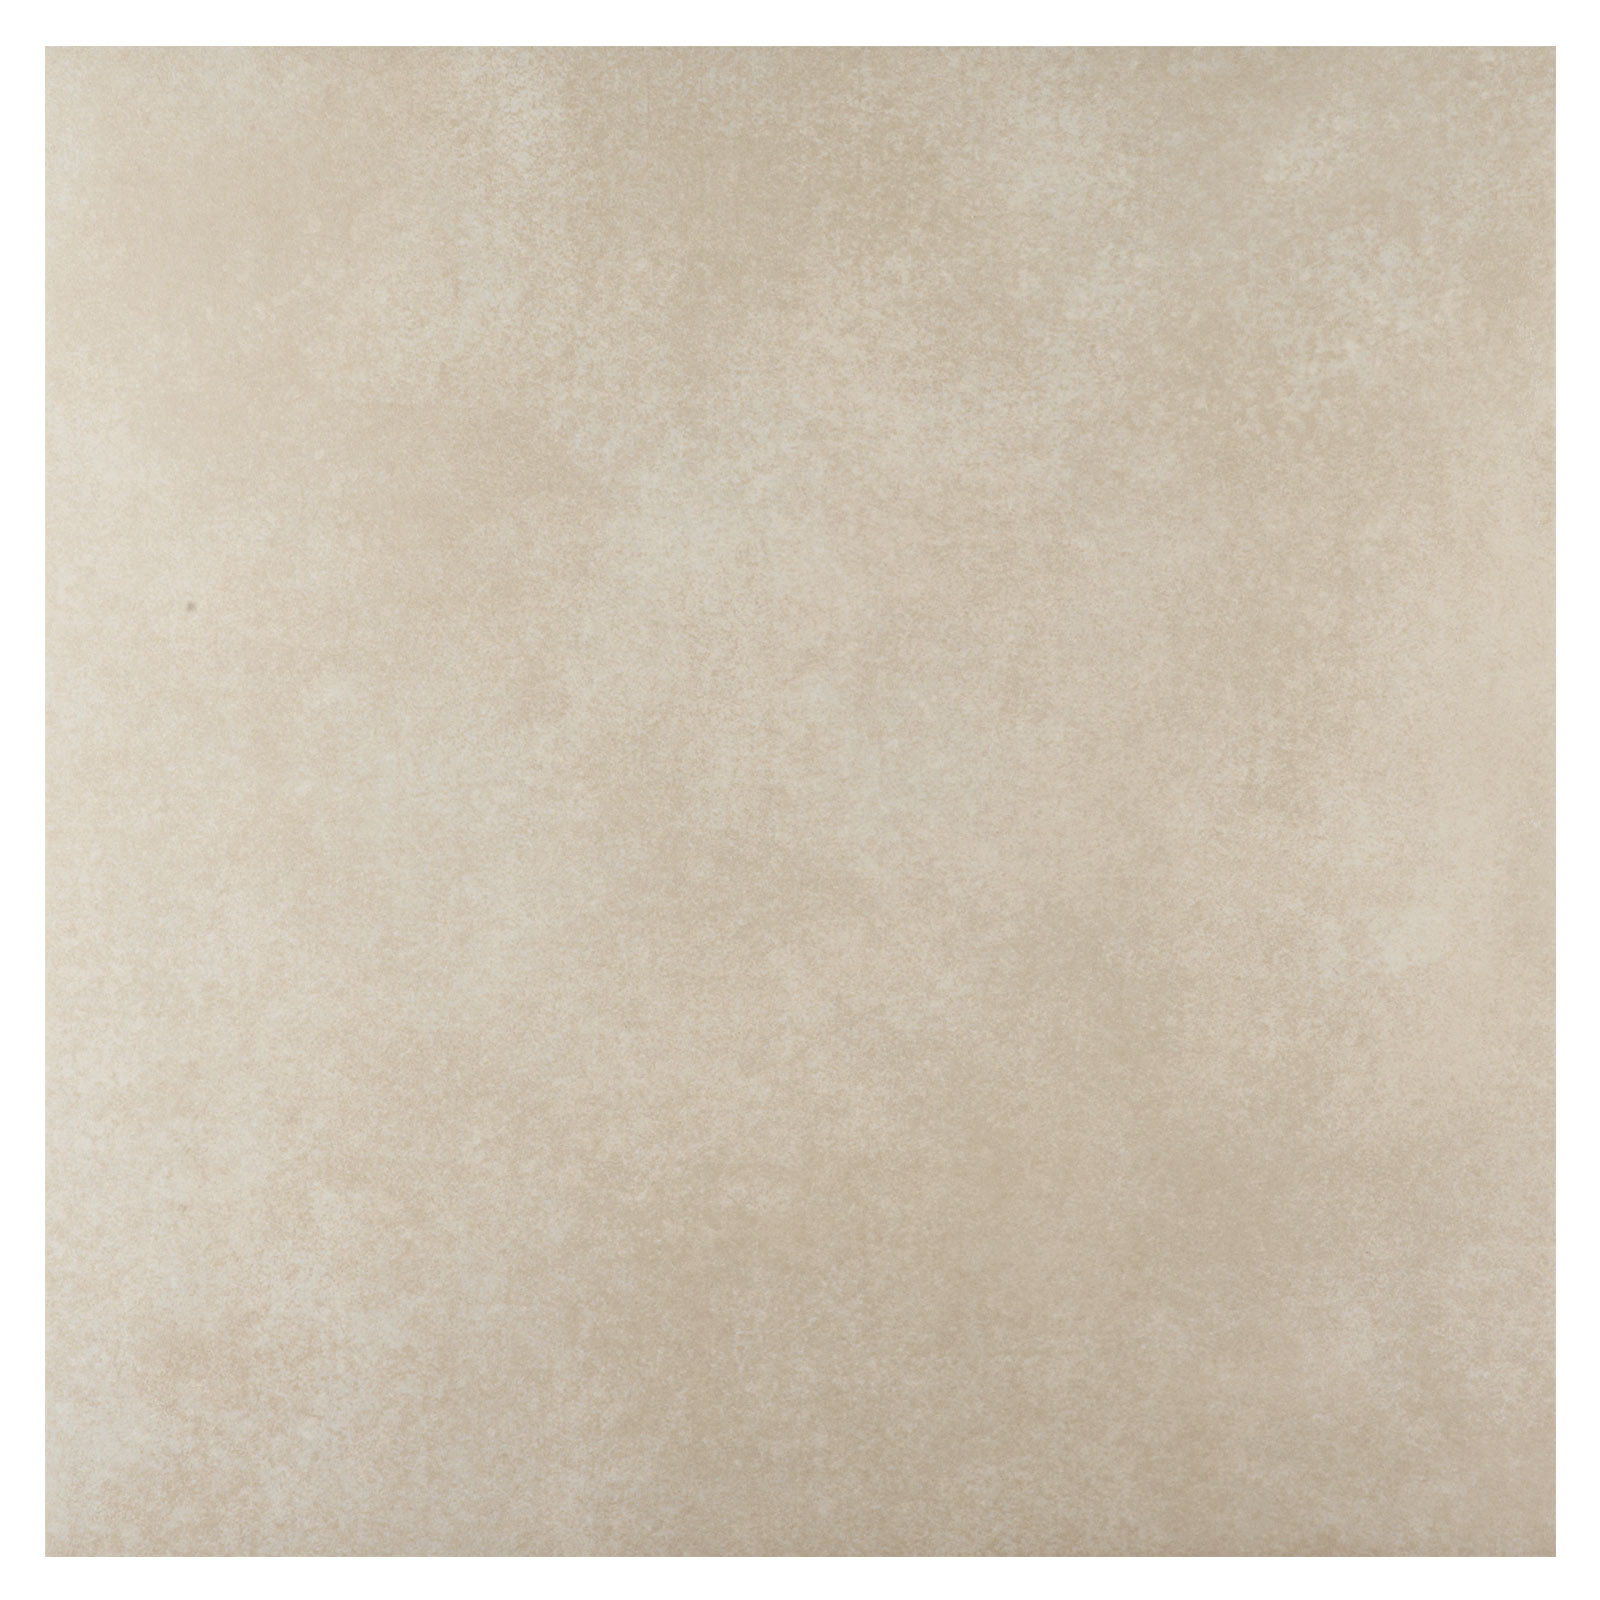 Avant Beige Glazed Porcelain Wall Floor Tile